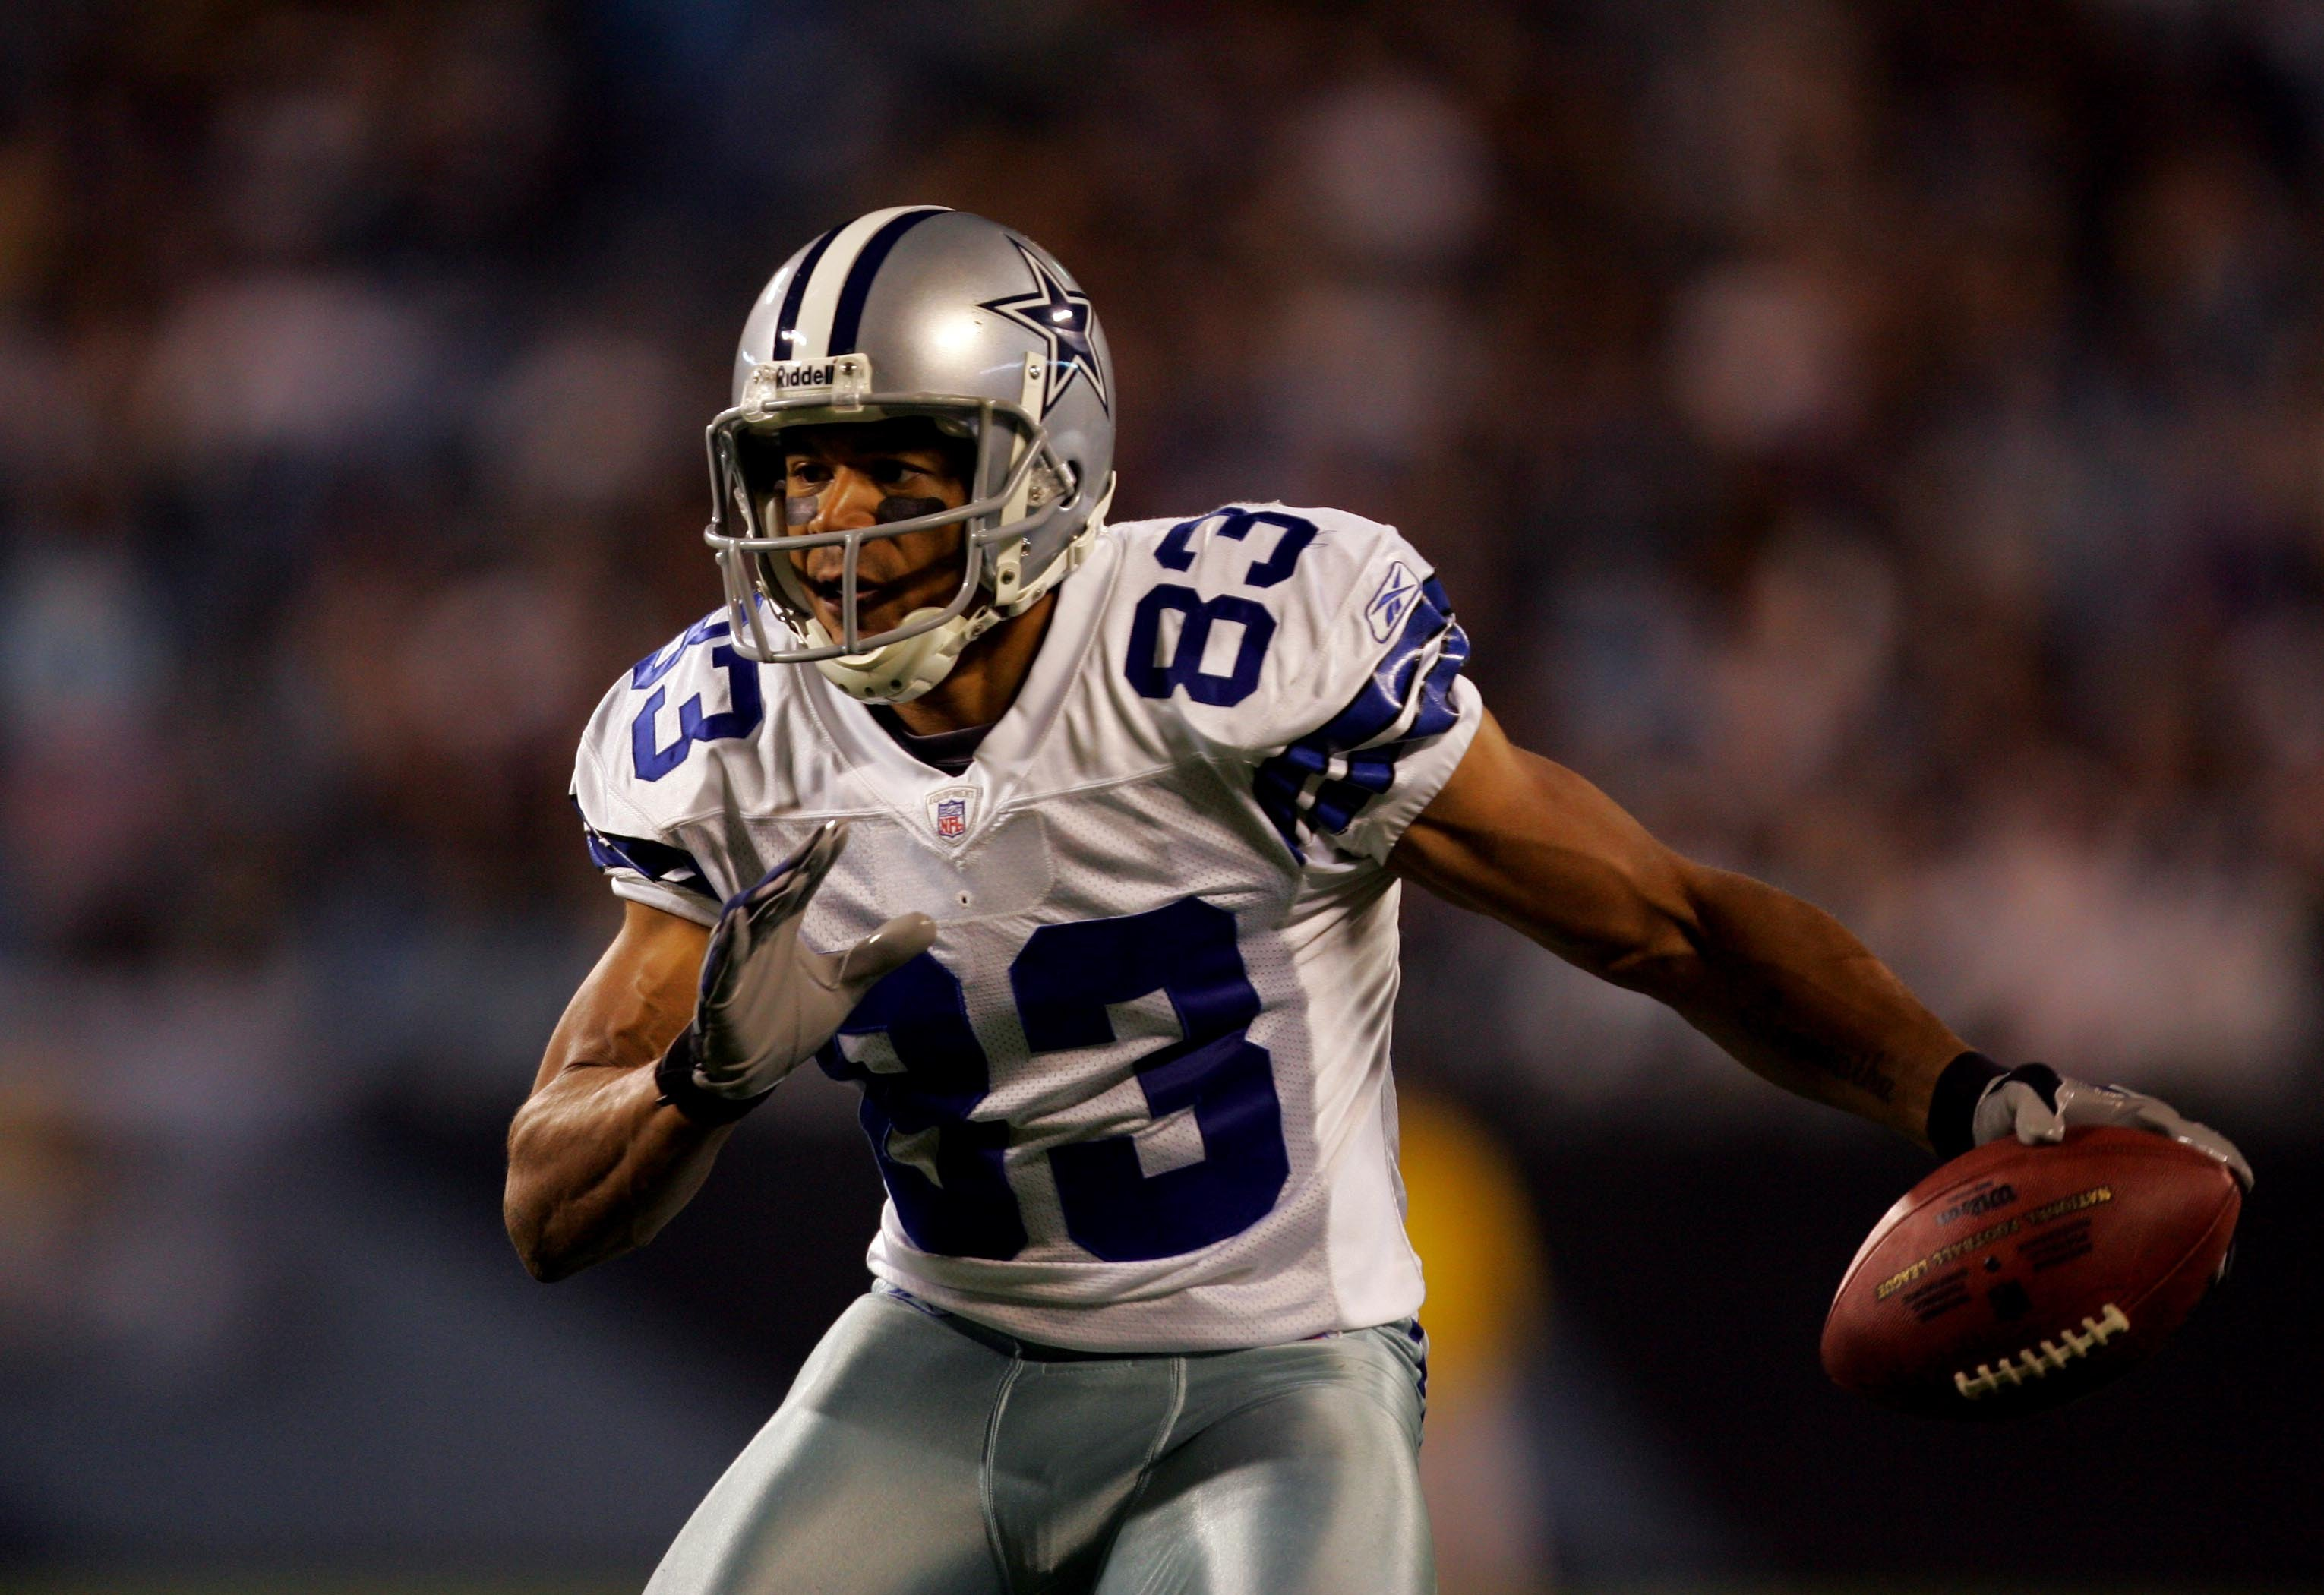 Terry Glenn killed in vehicle crash